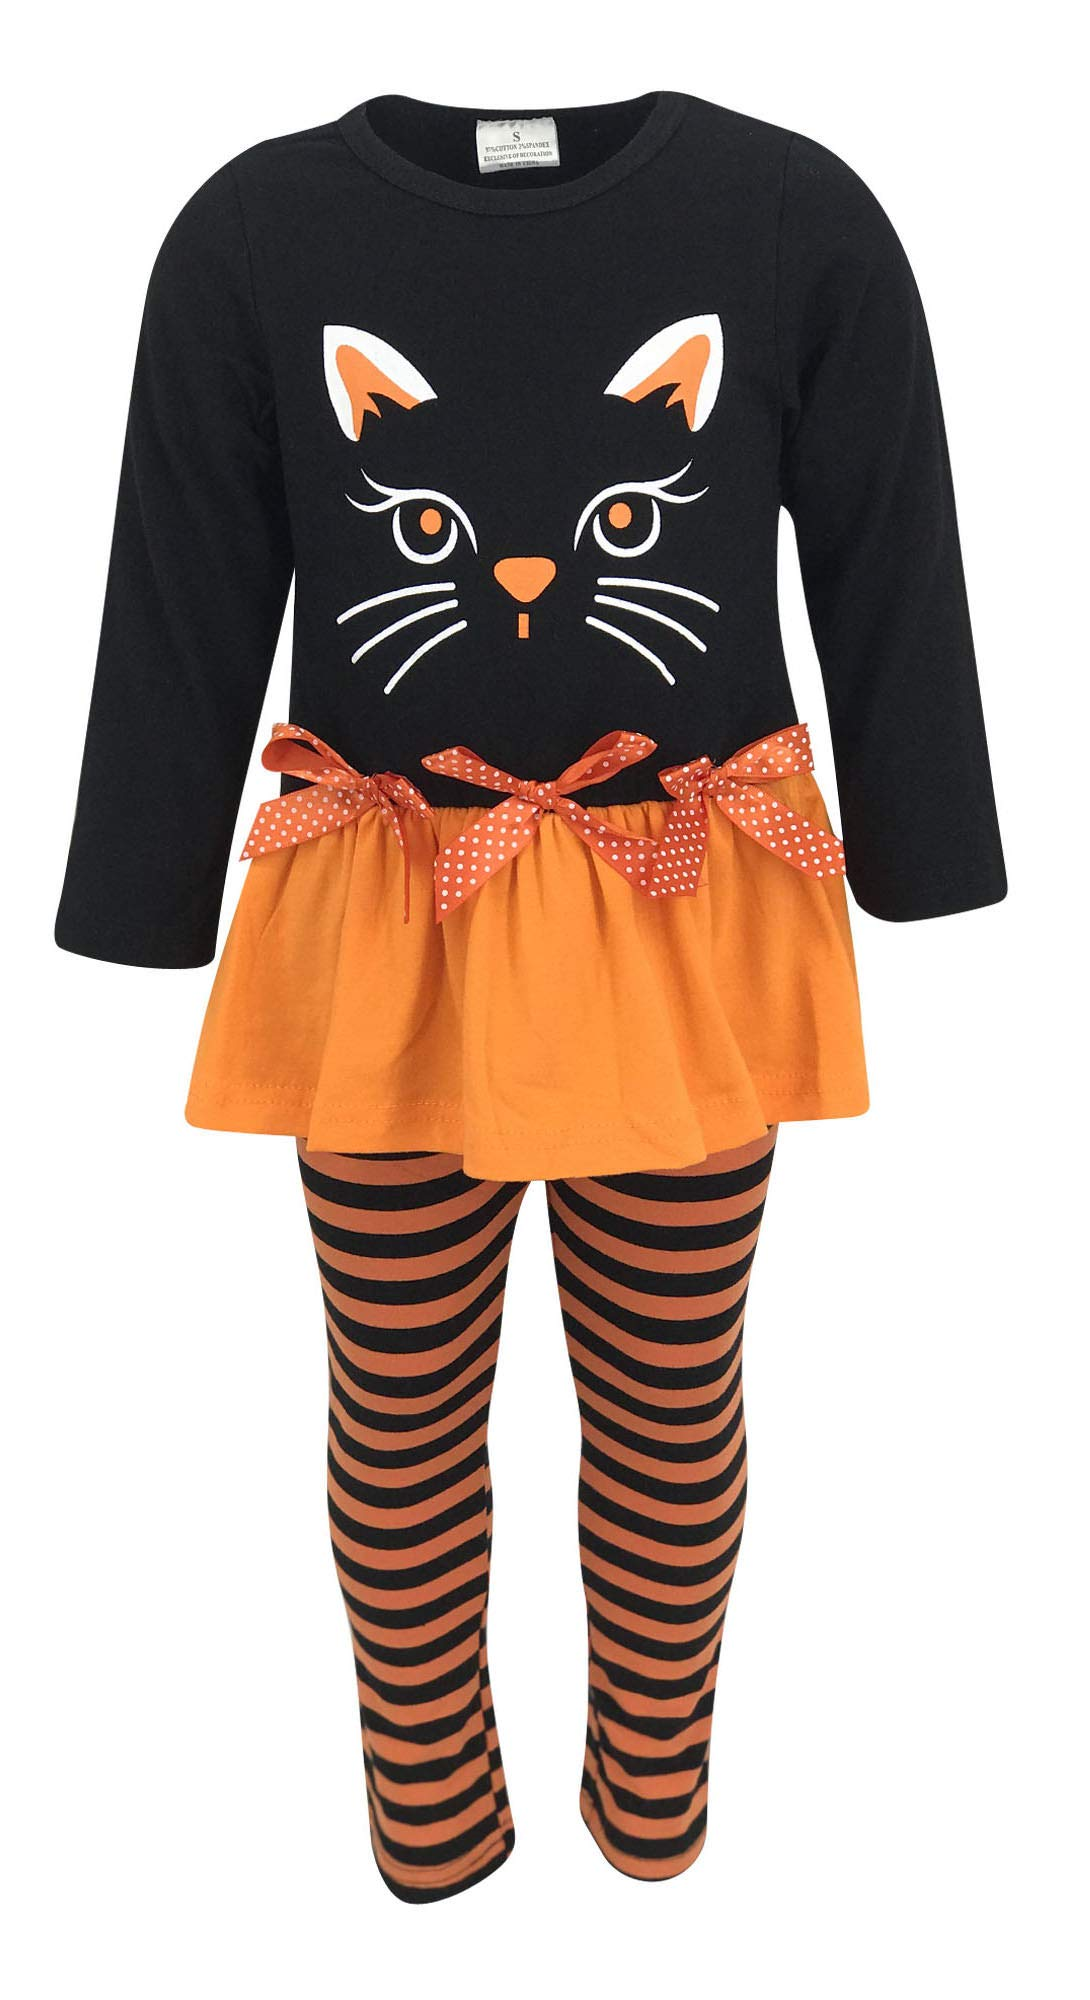 Unique Baby Girls Black Cat Halloween Outfit with Bows and Stripes (8/XXXL, Orange)